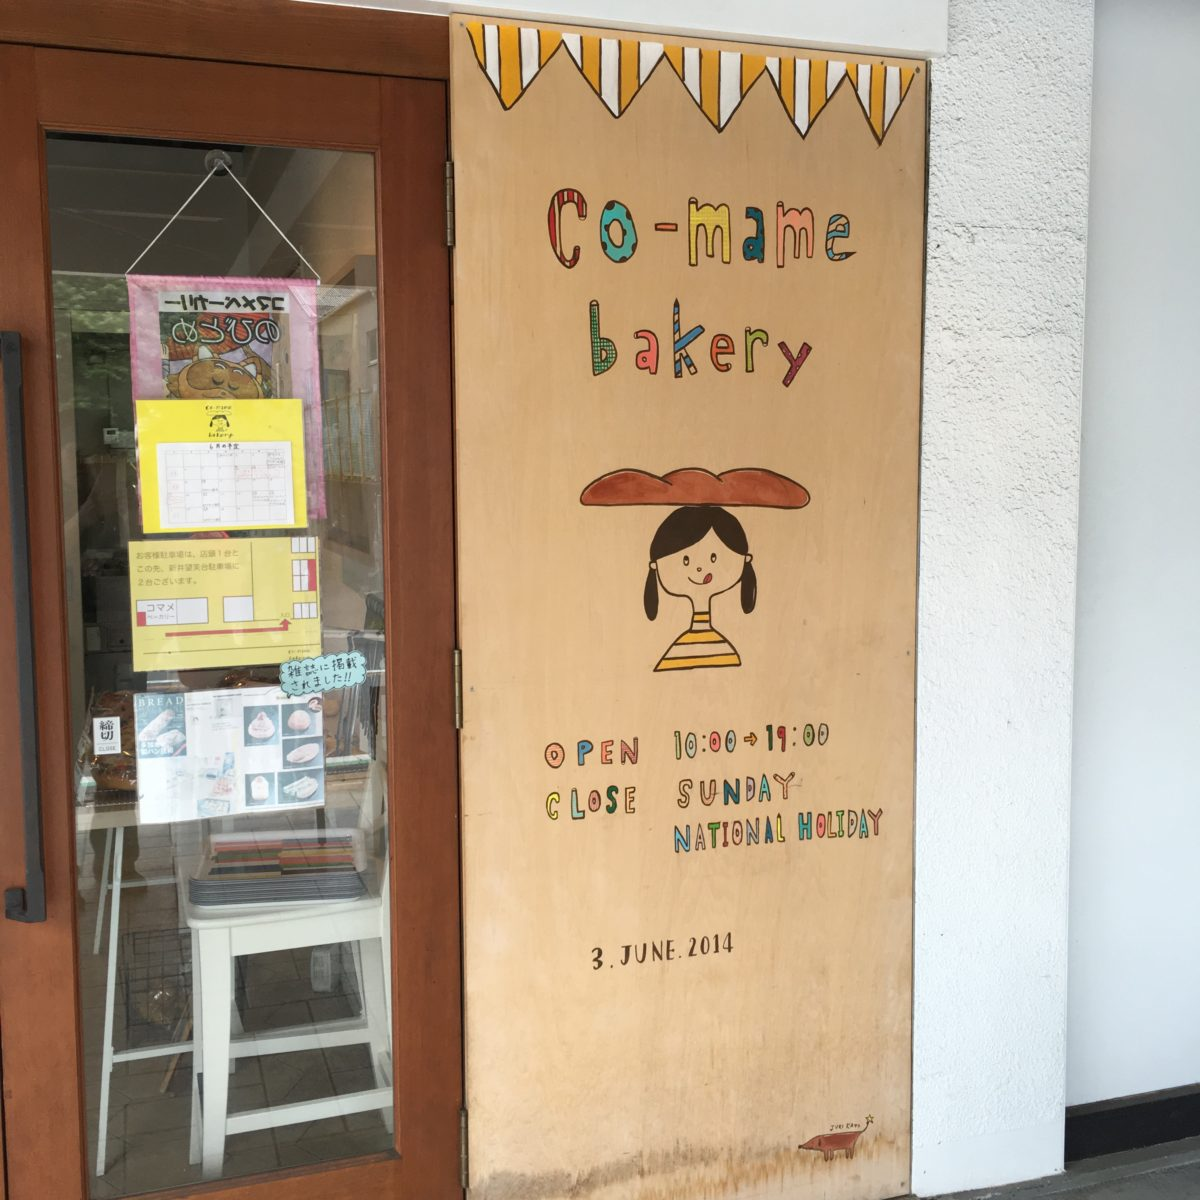 co-mame bakery (新座市)